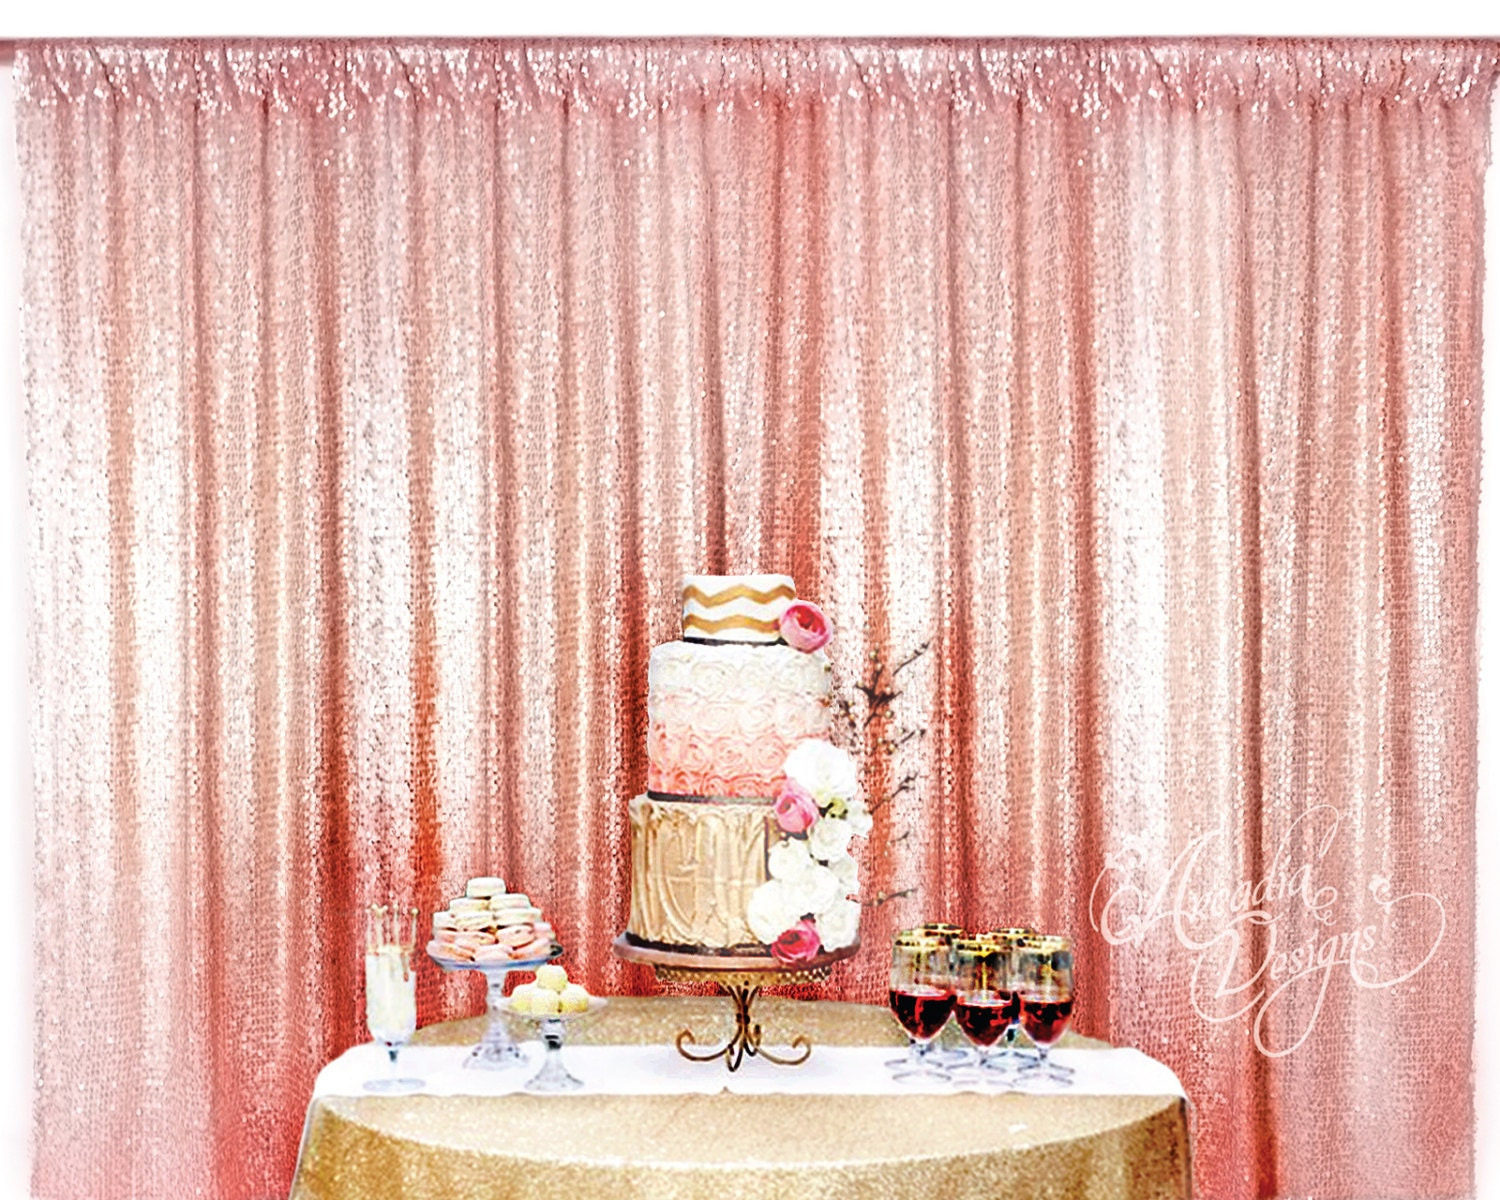 Sequin Backdrop Made To Order 45 Colors Sequin Backdrop For